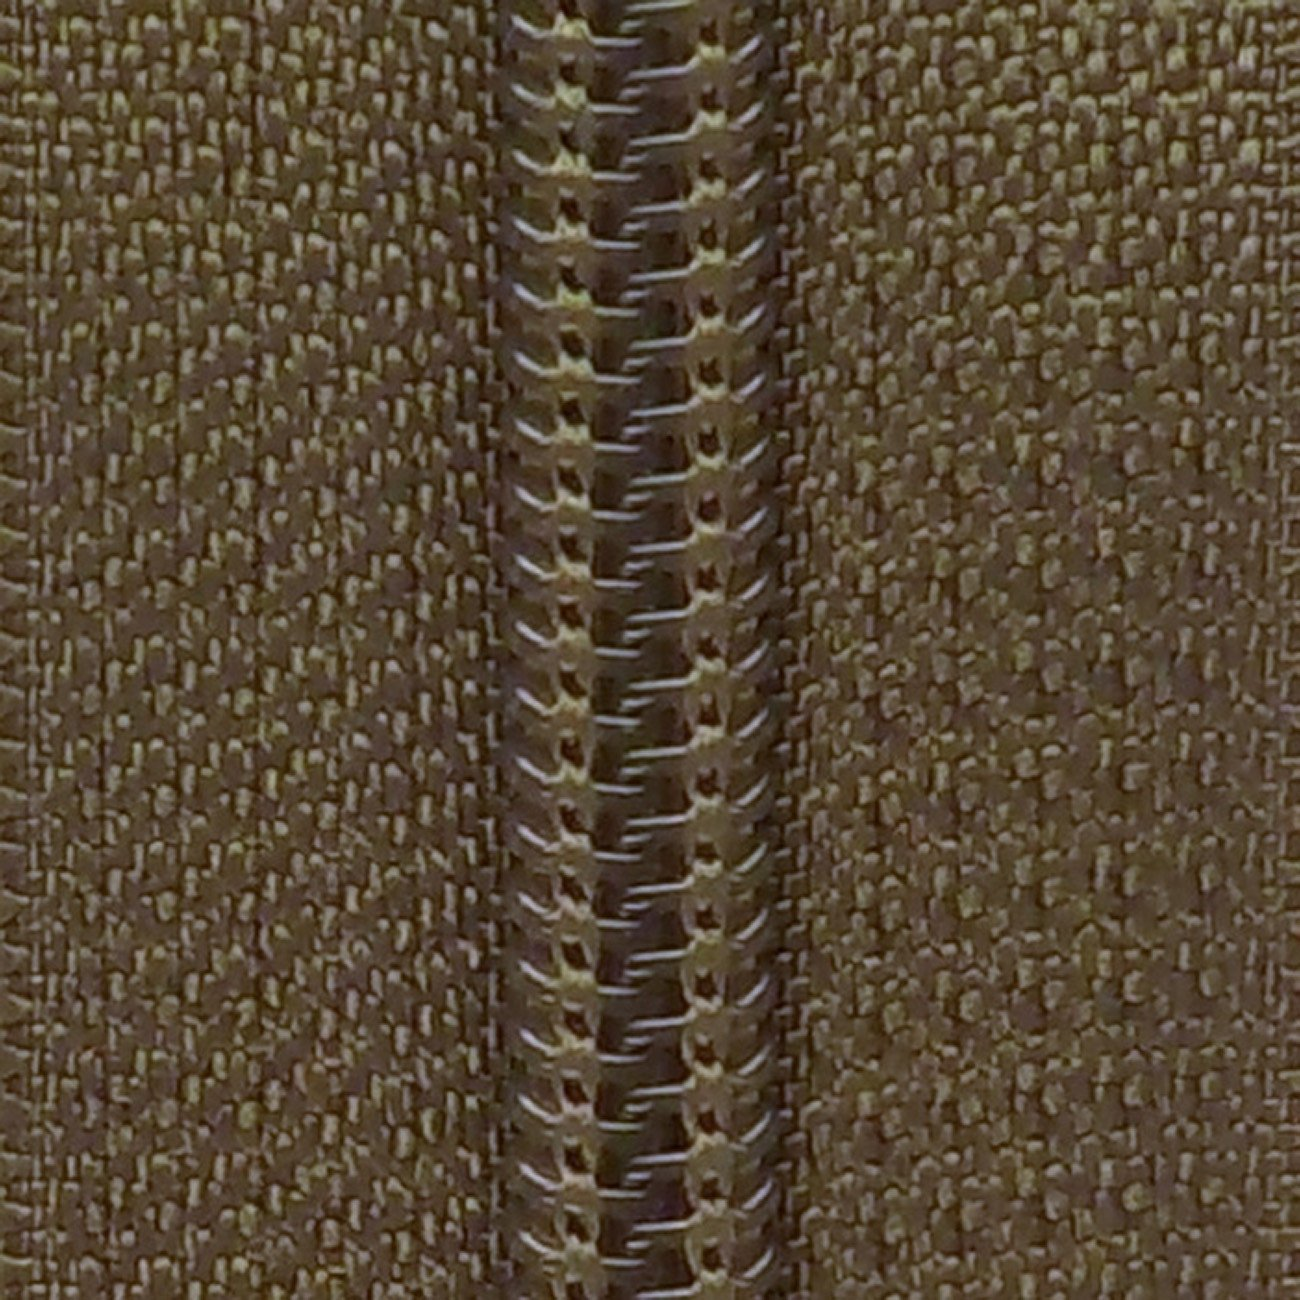 22 Non-separating Zipper Olive Drab